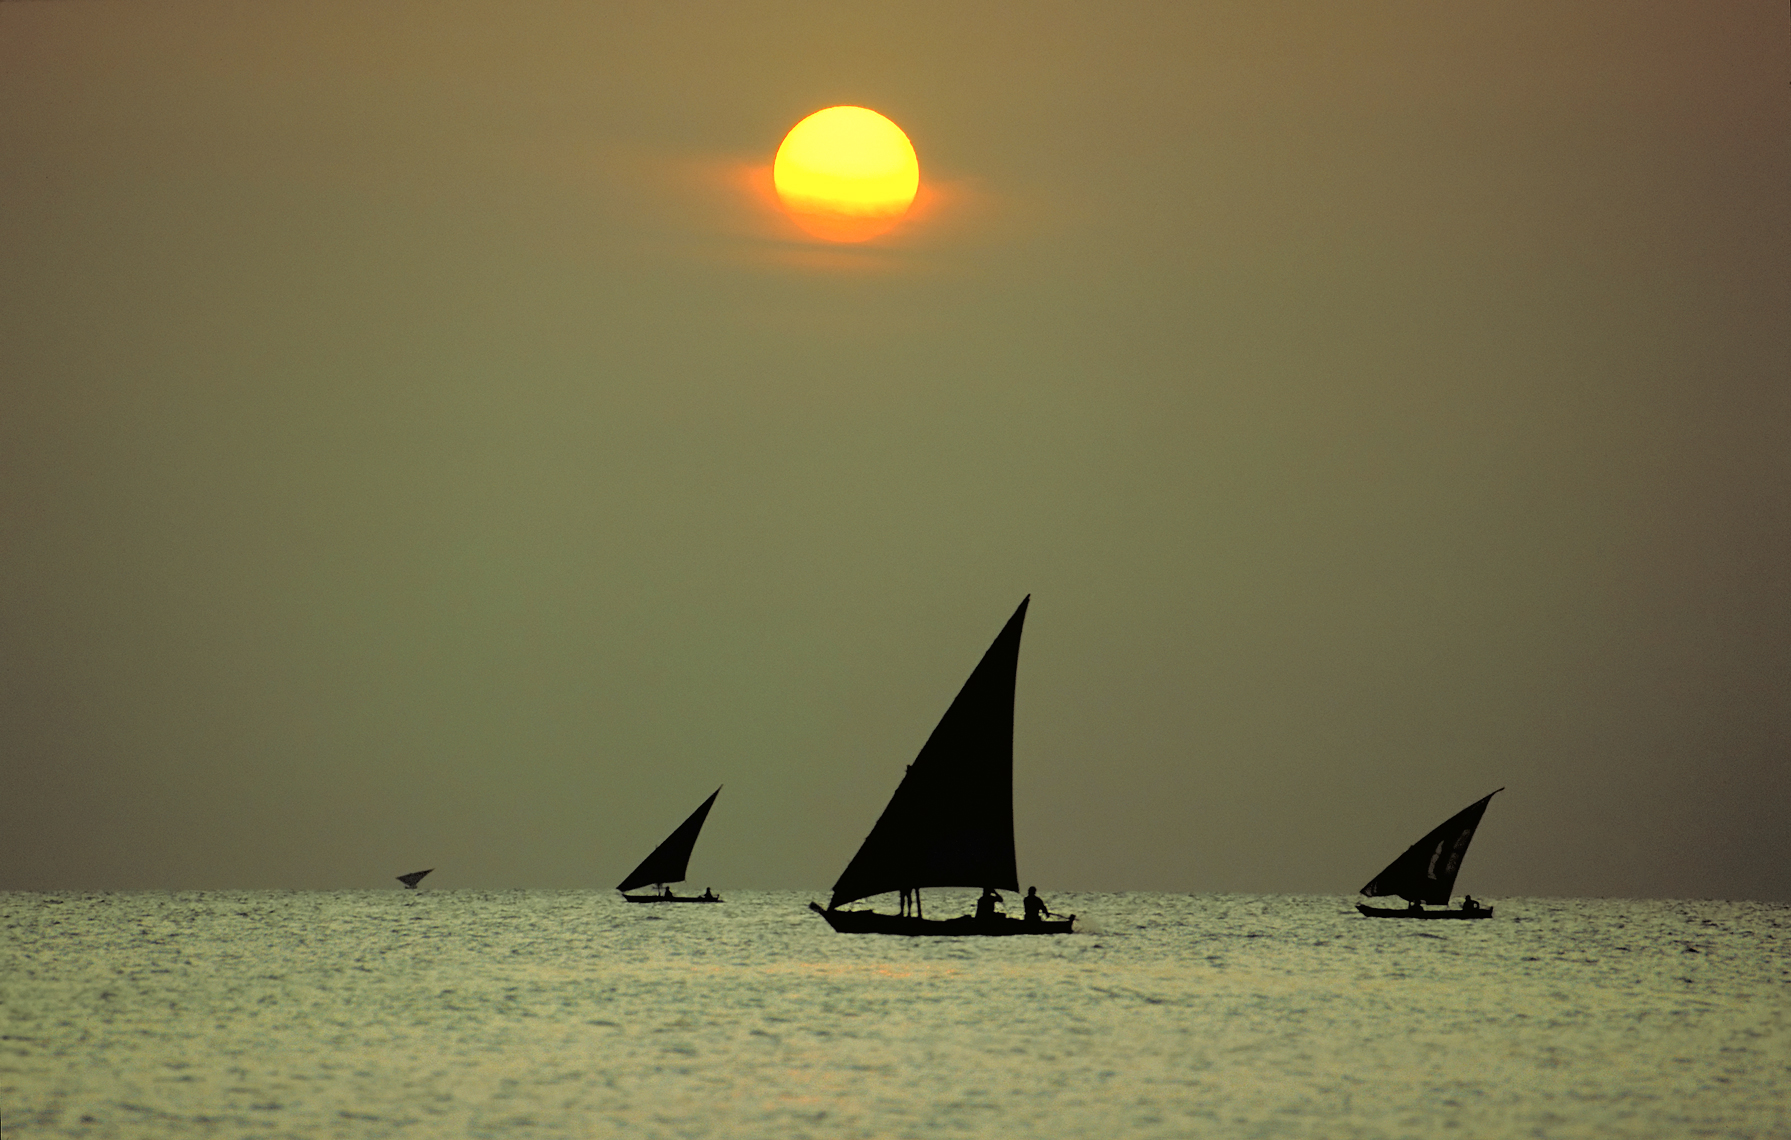 Jon Wyatt Photography - Dhows, Zanzibar